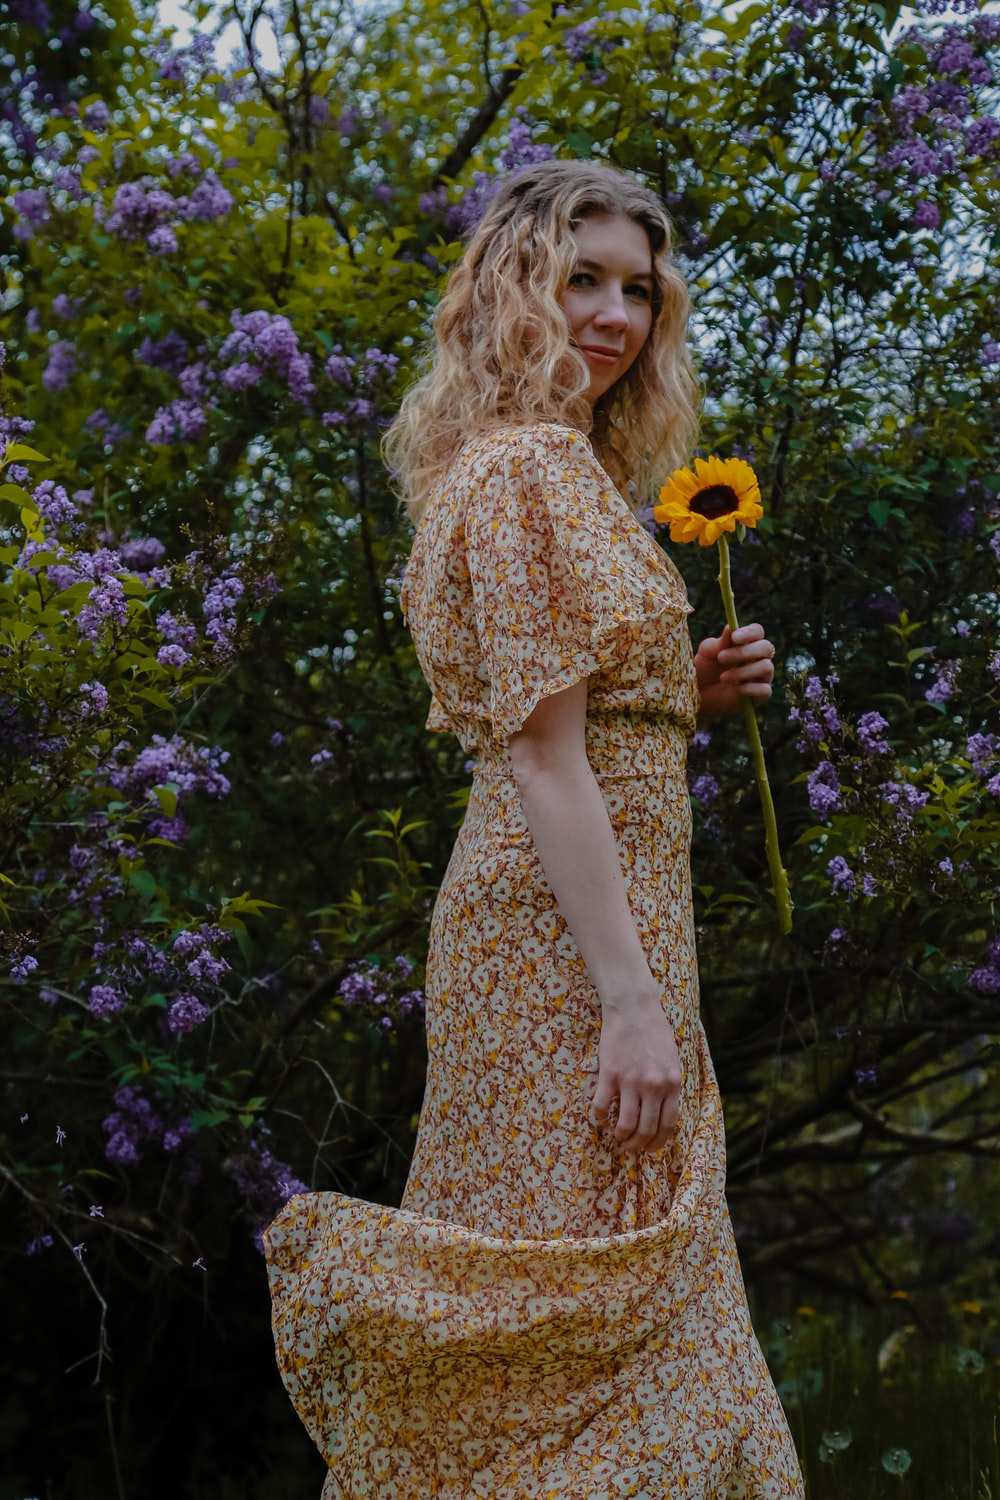 woman in yellow and white floral dress standing beside purple flowers